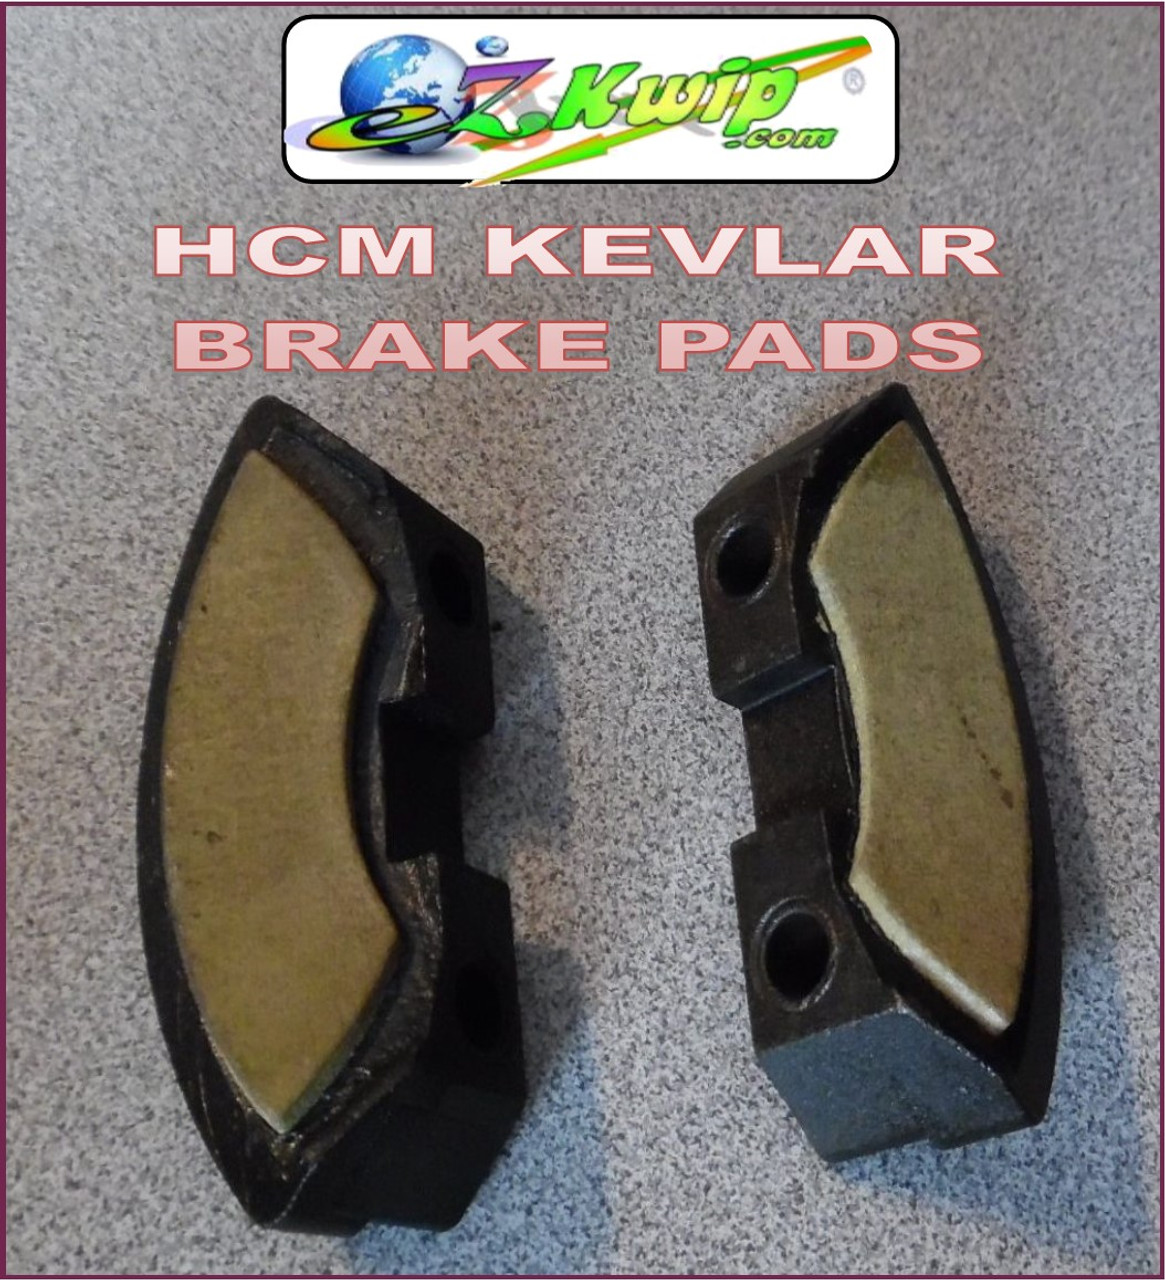 Hobart HCM-450 Kevlar Brake Pad Set $225 Plus Core Charge